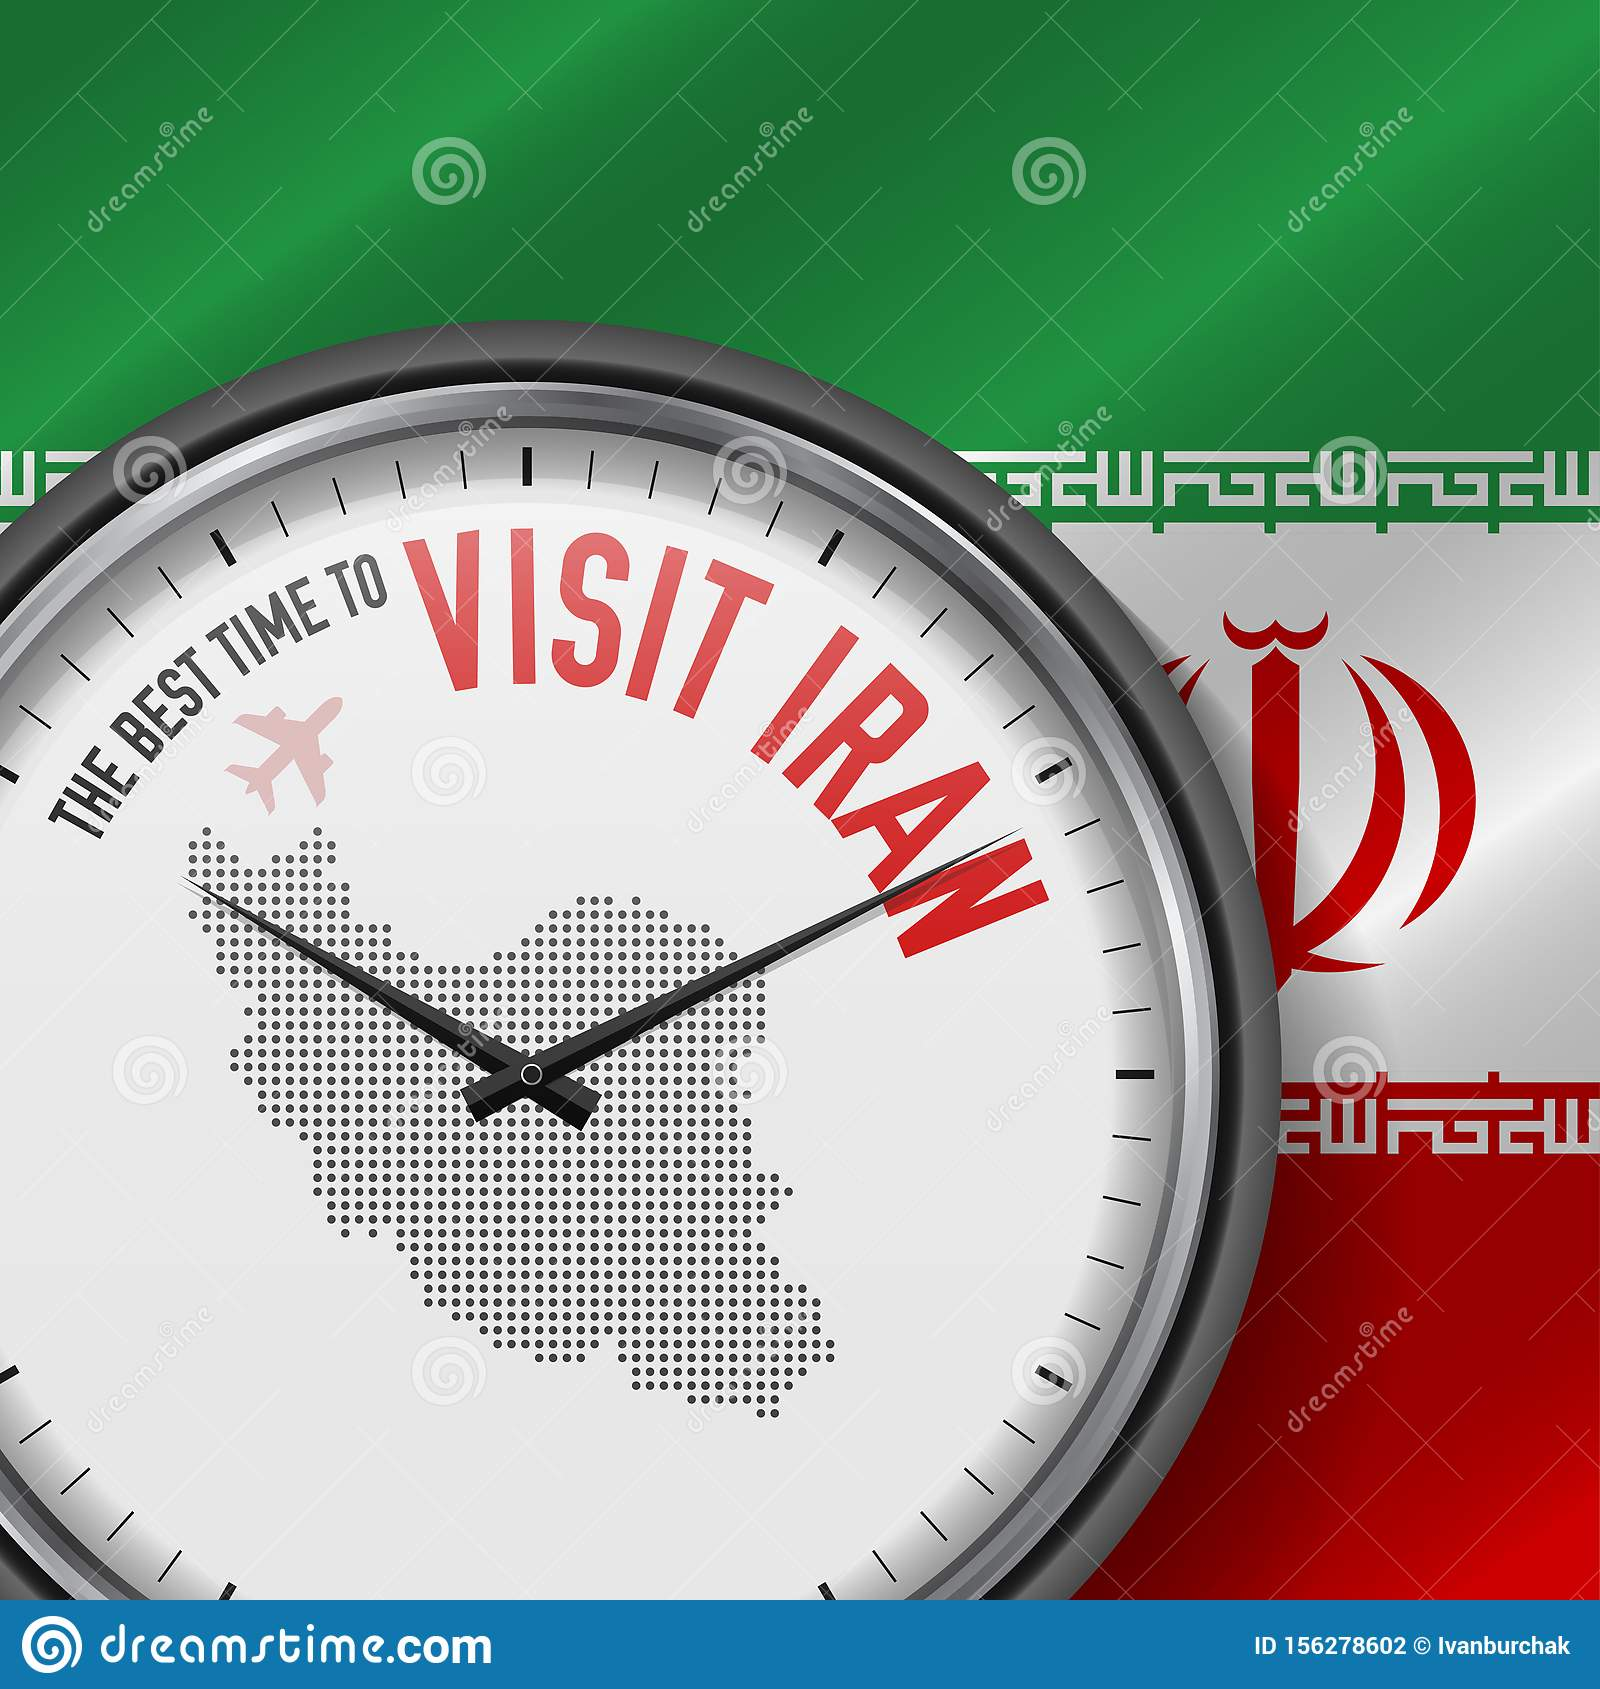 The Best Time to Visit Iran. Flight, Tour to Iran. Vector Illustration